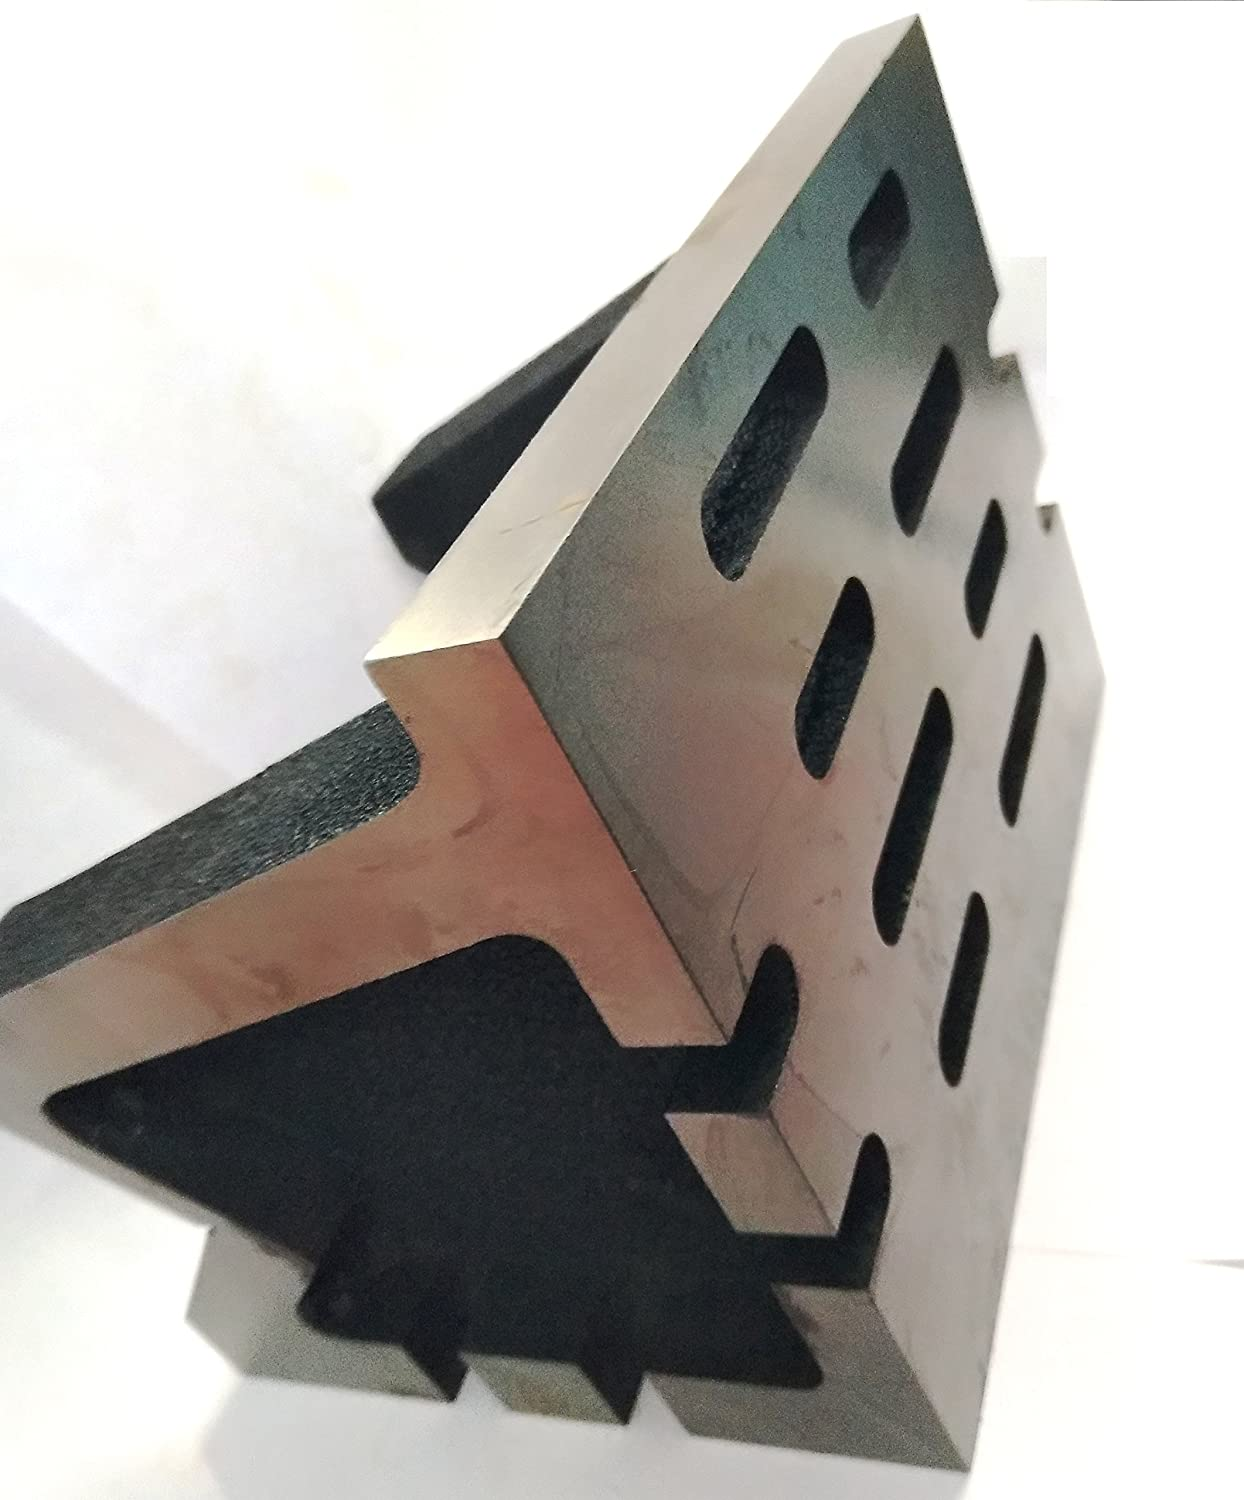 100 x 100 x 150 mm -Slotted WORK-HOLDING CLAMPING MILLING ENGINEERING MACHINE TOOLS-HEAVY DUTY 4 x 4 x 6 QUALITY PRECISION GRADED CASTE IRON VEE ANGLE PLATES-STRESS RELIEVED